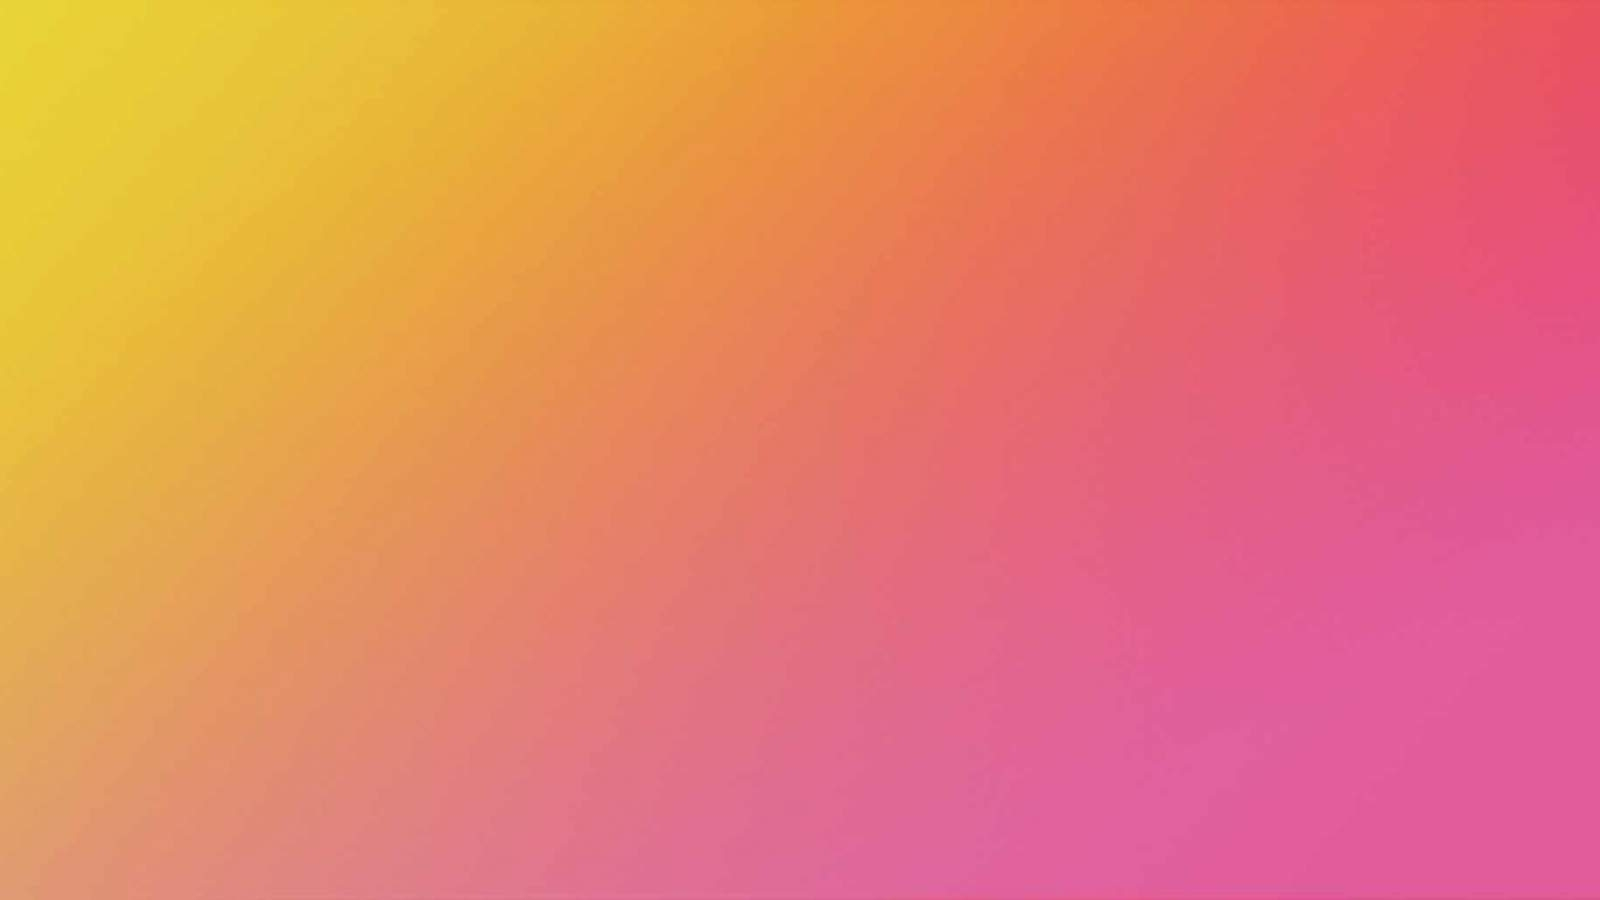 pink and orange background 2 | background check all